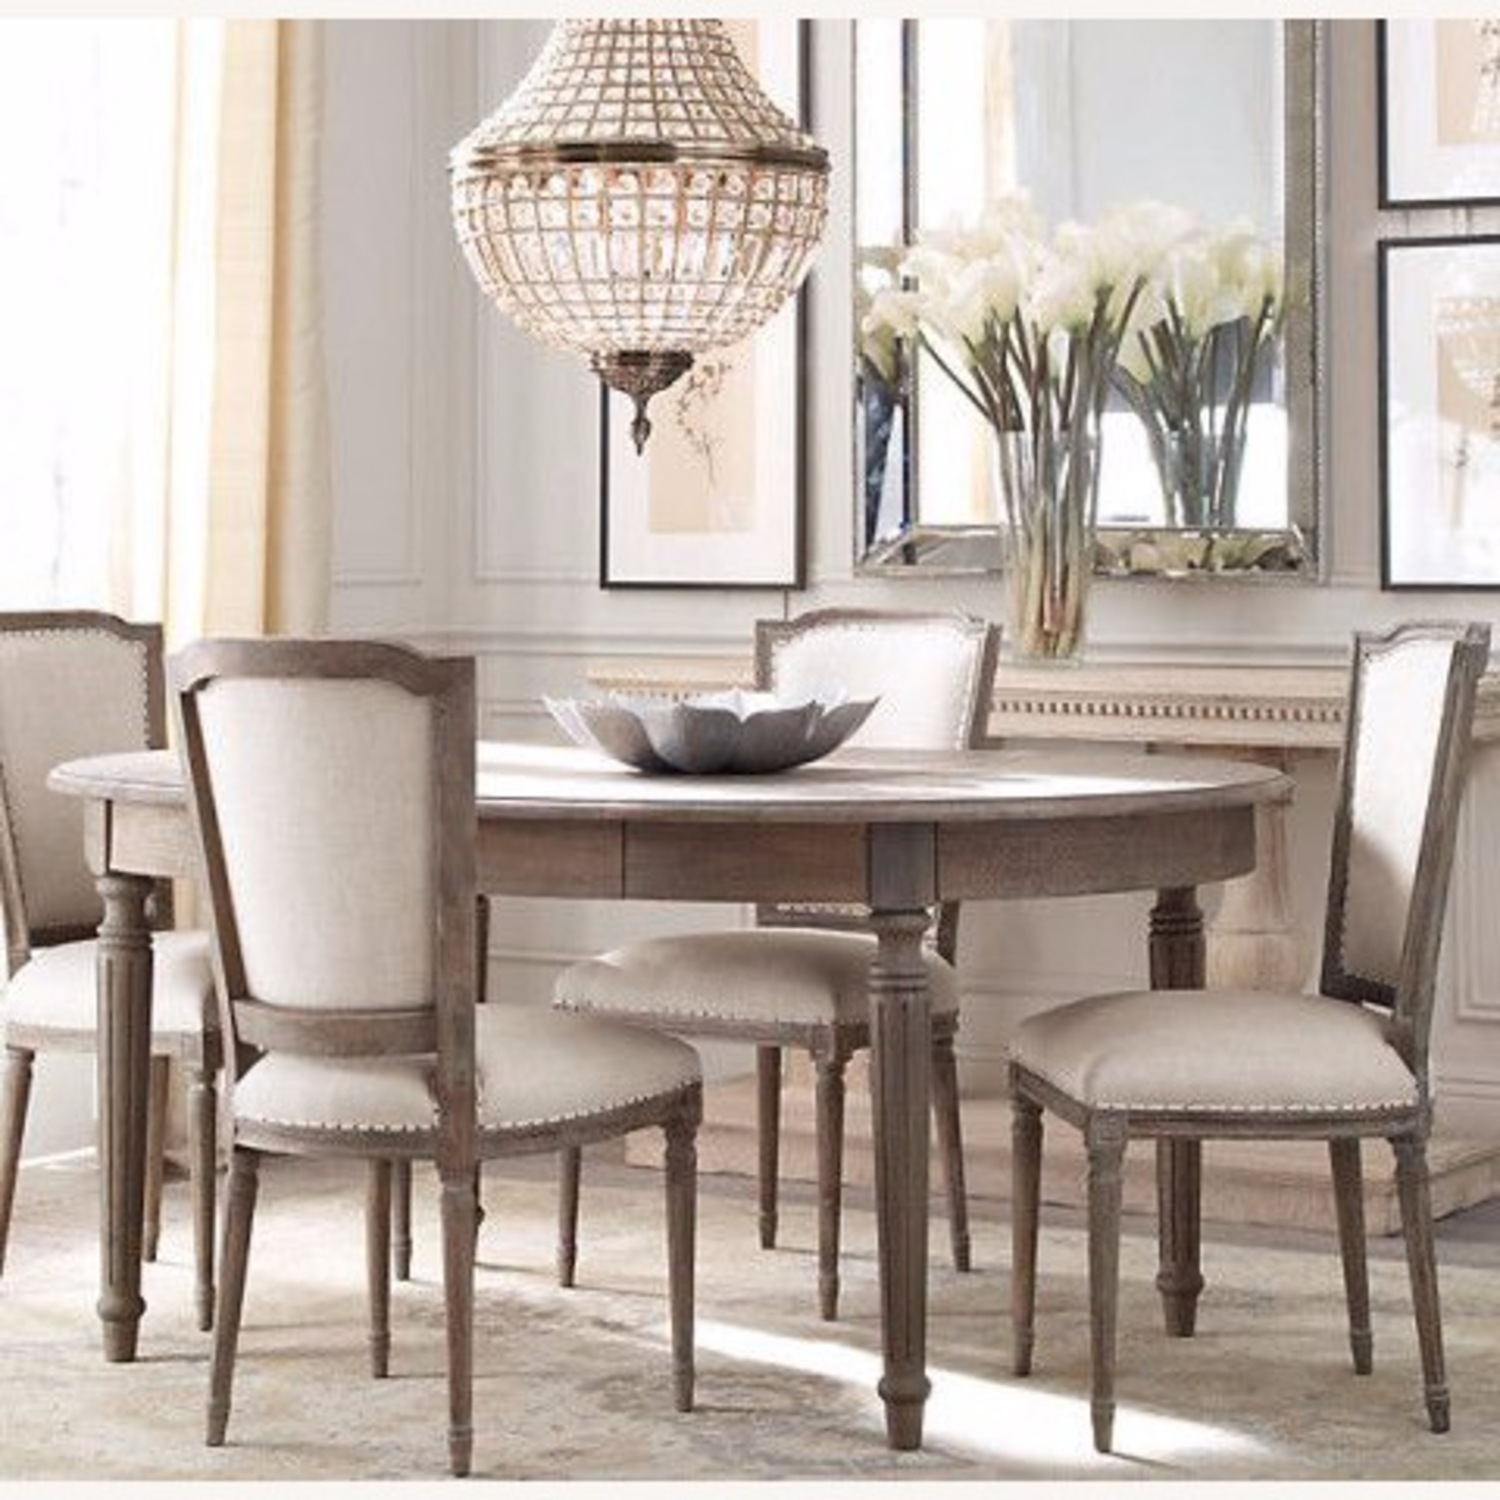 Round dining table set with leaf & Round Dining Table Set With Leaf - Foter